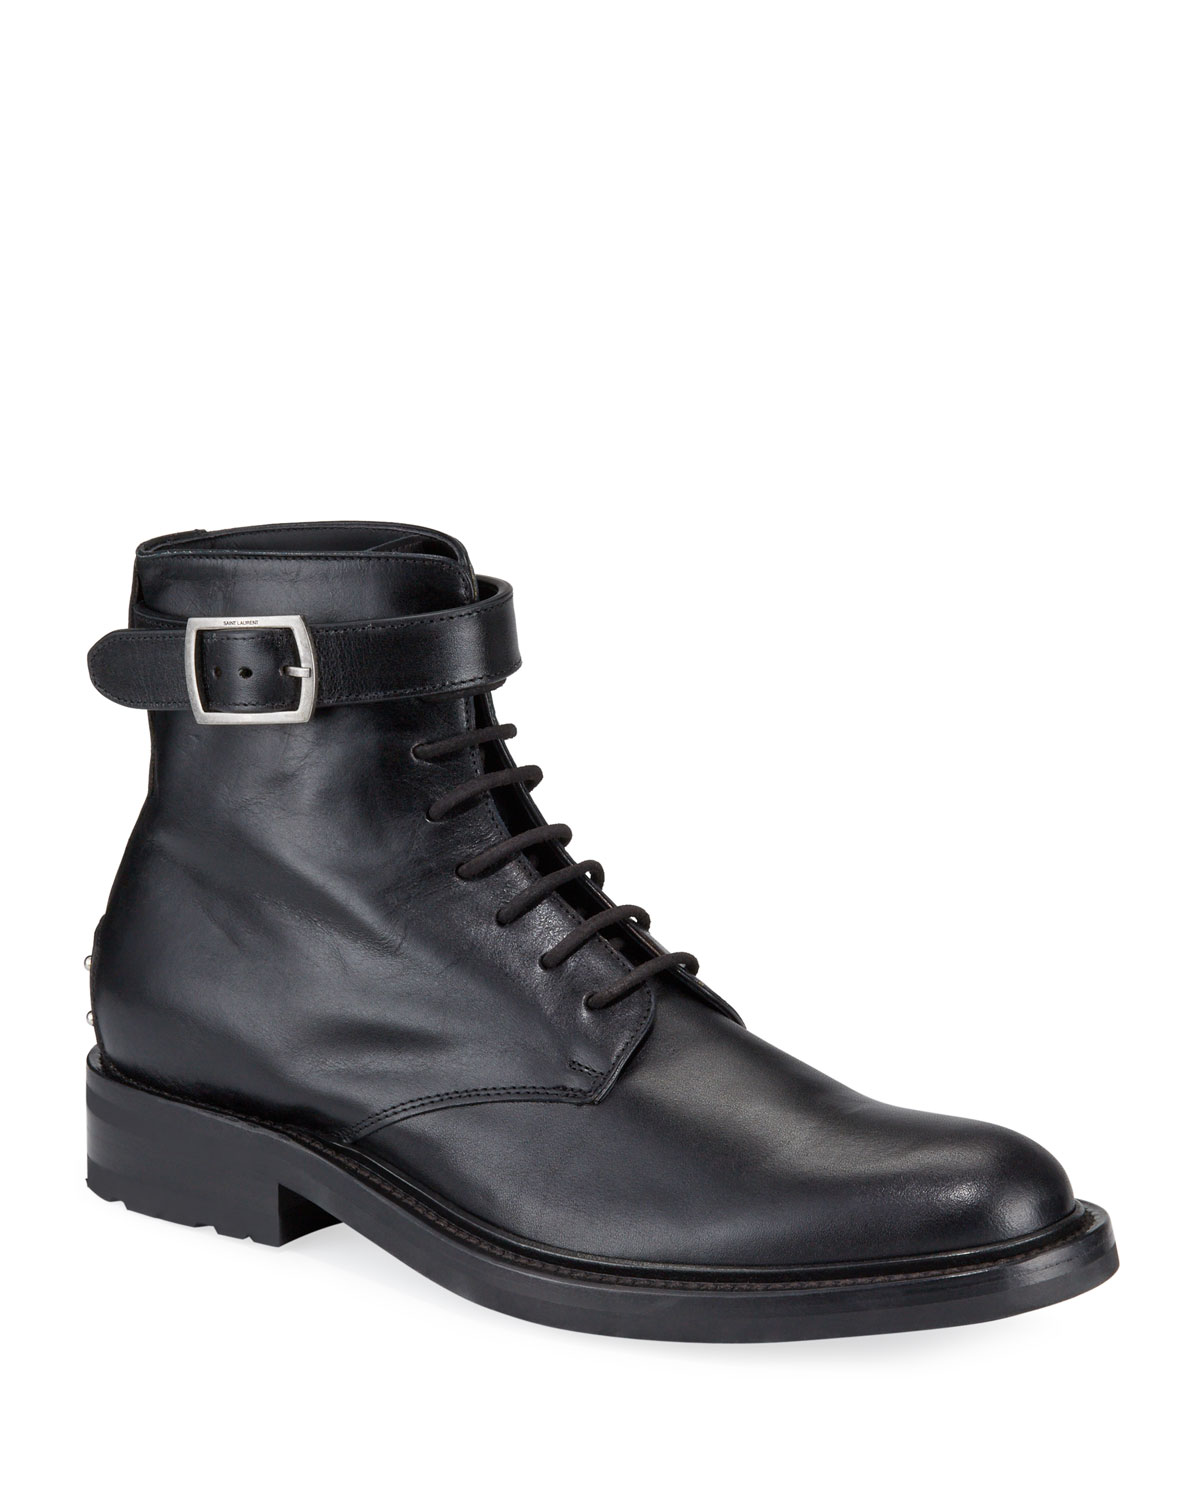 Men's Leather Studded-Heel Moto Boots